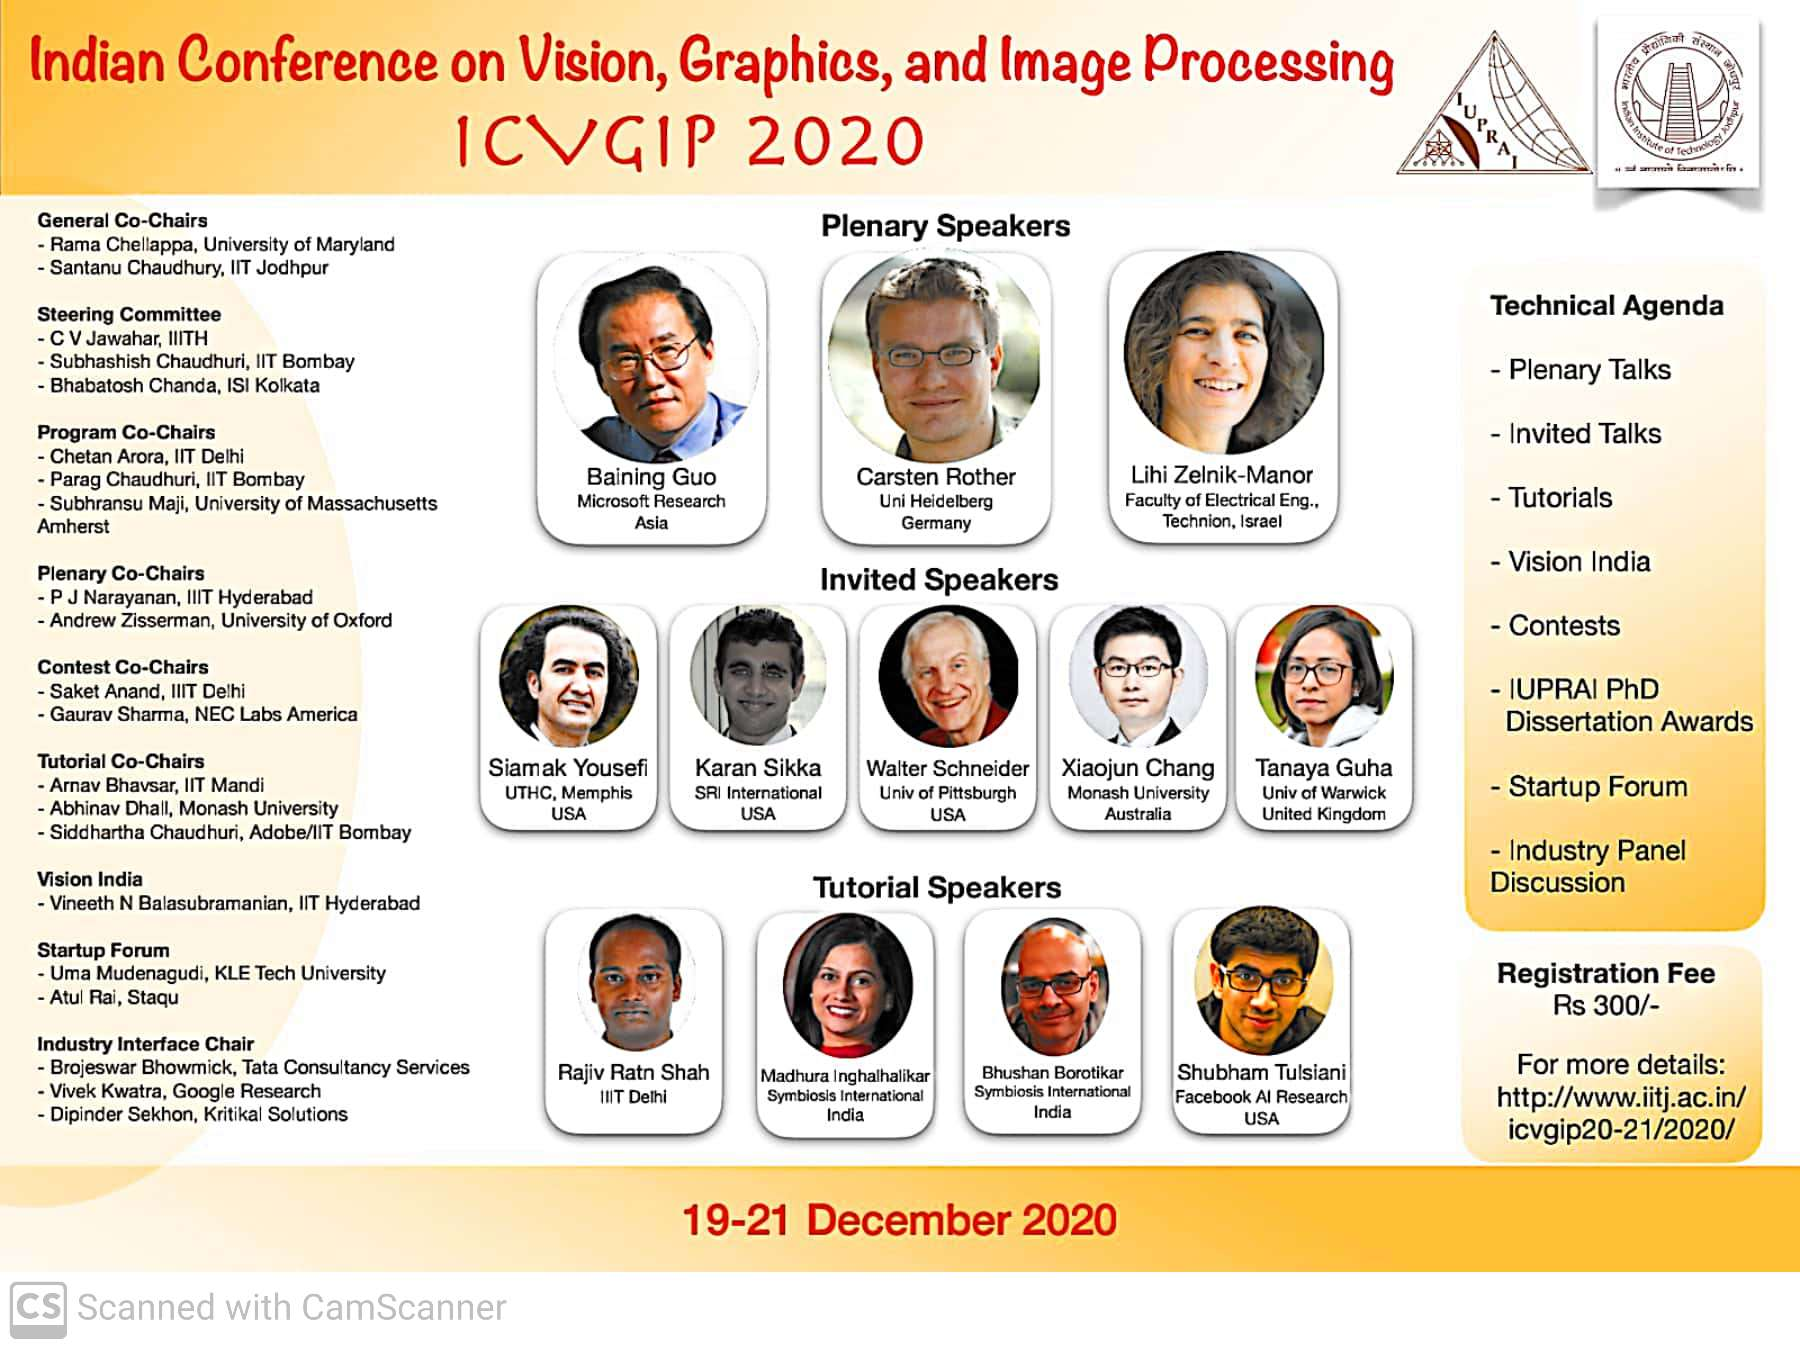 IIT Jodhpur organising the Indian Conference on Computer Vision, Graphics and Image Processing (ICVGIP)